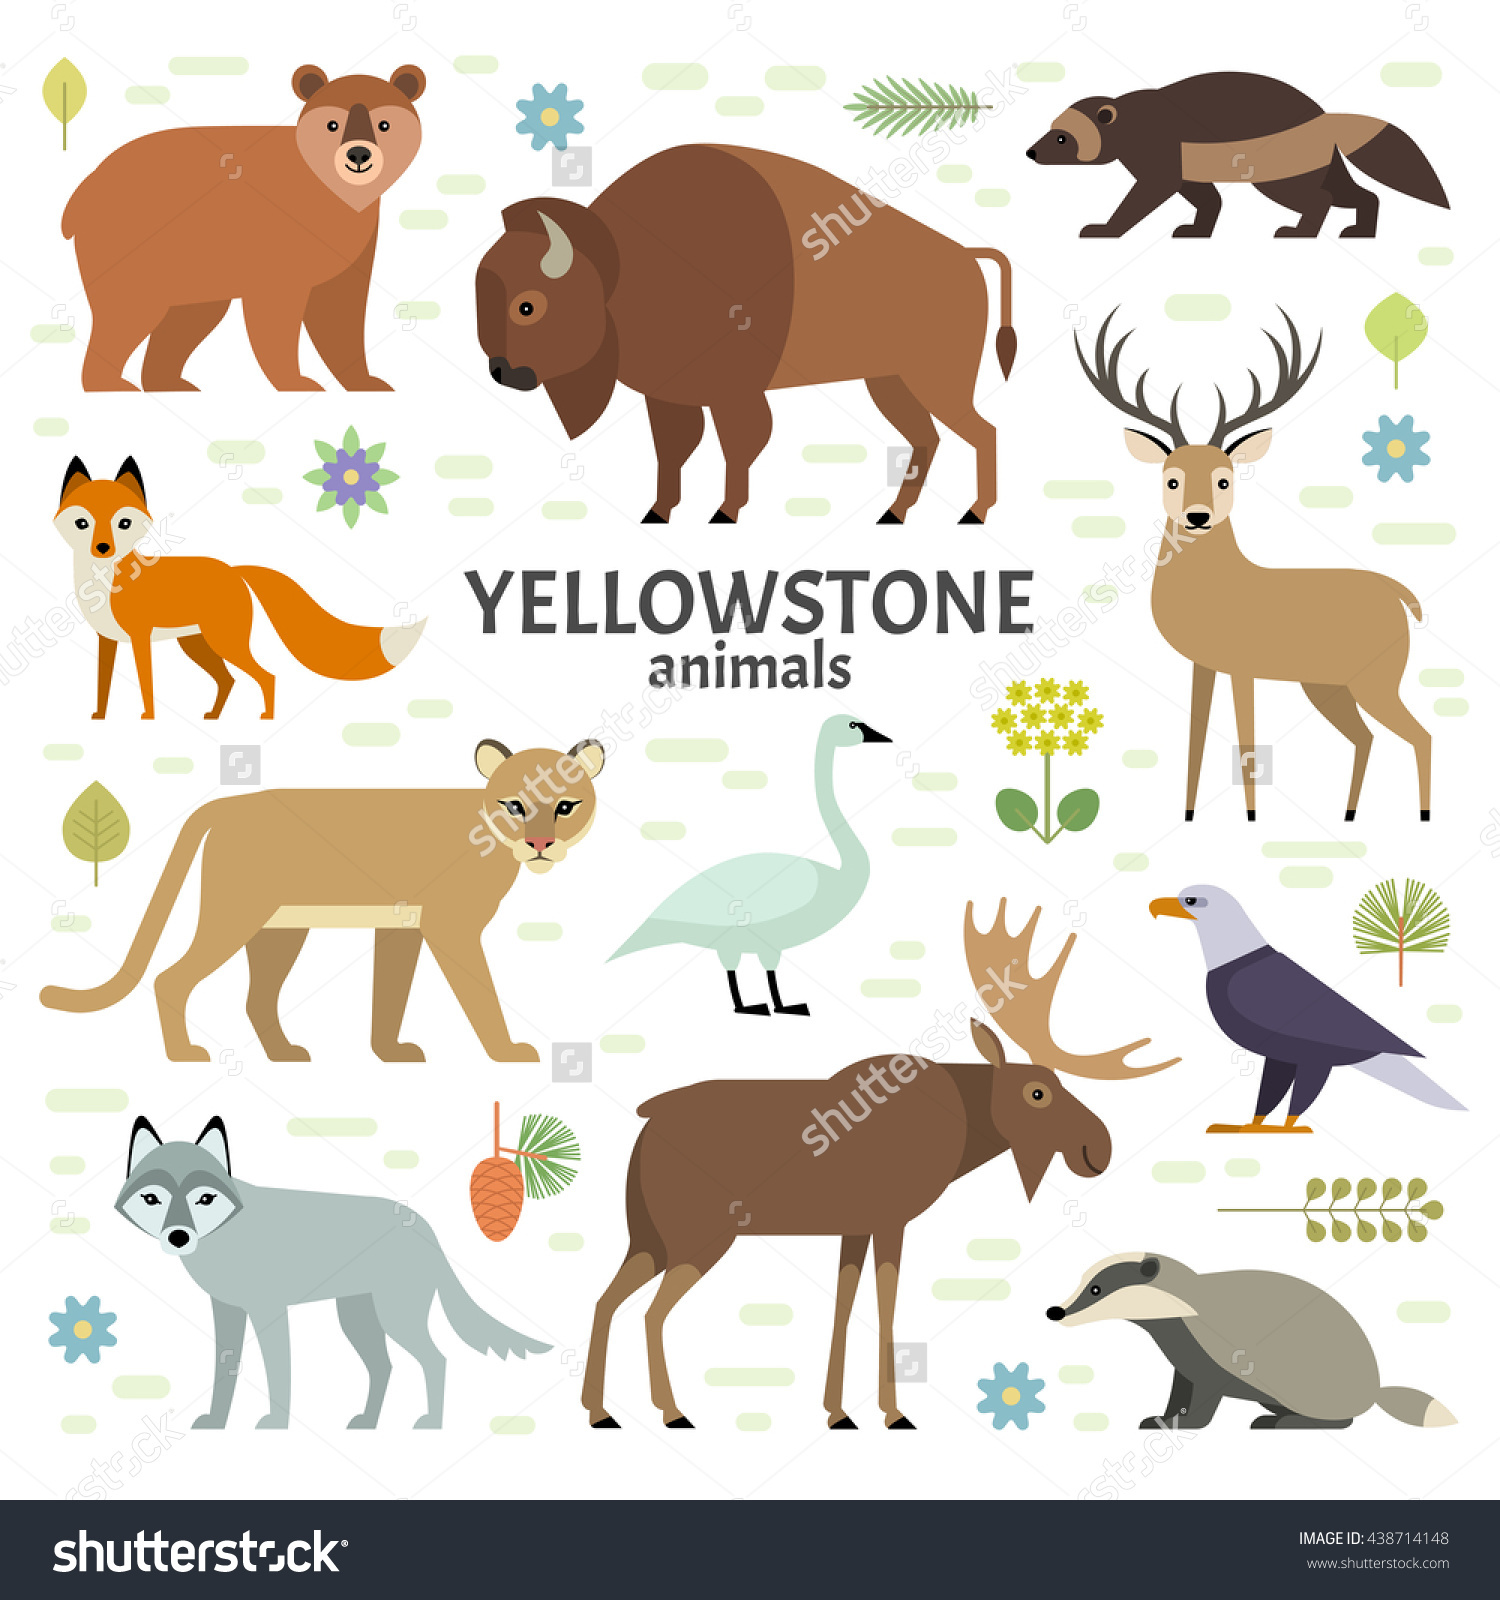 Yellowstone clipart #2, Download drawings